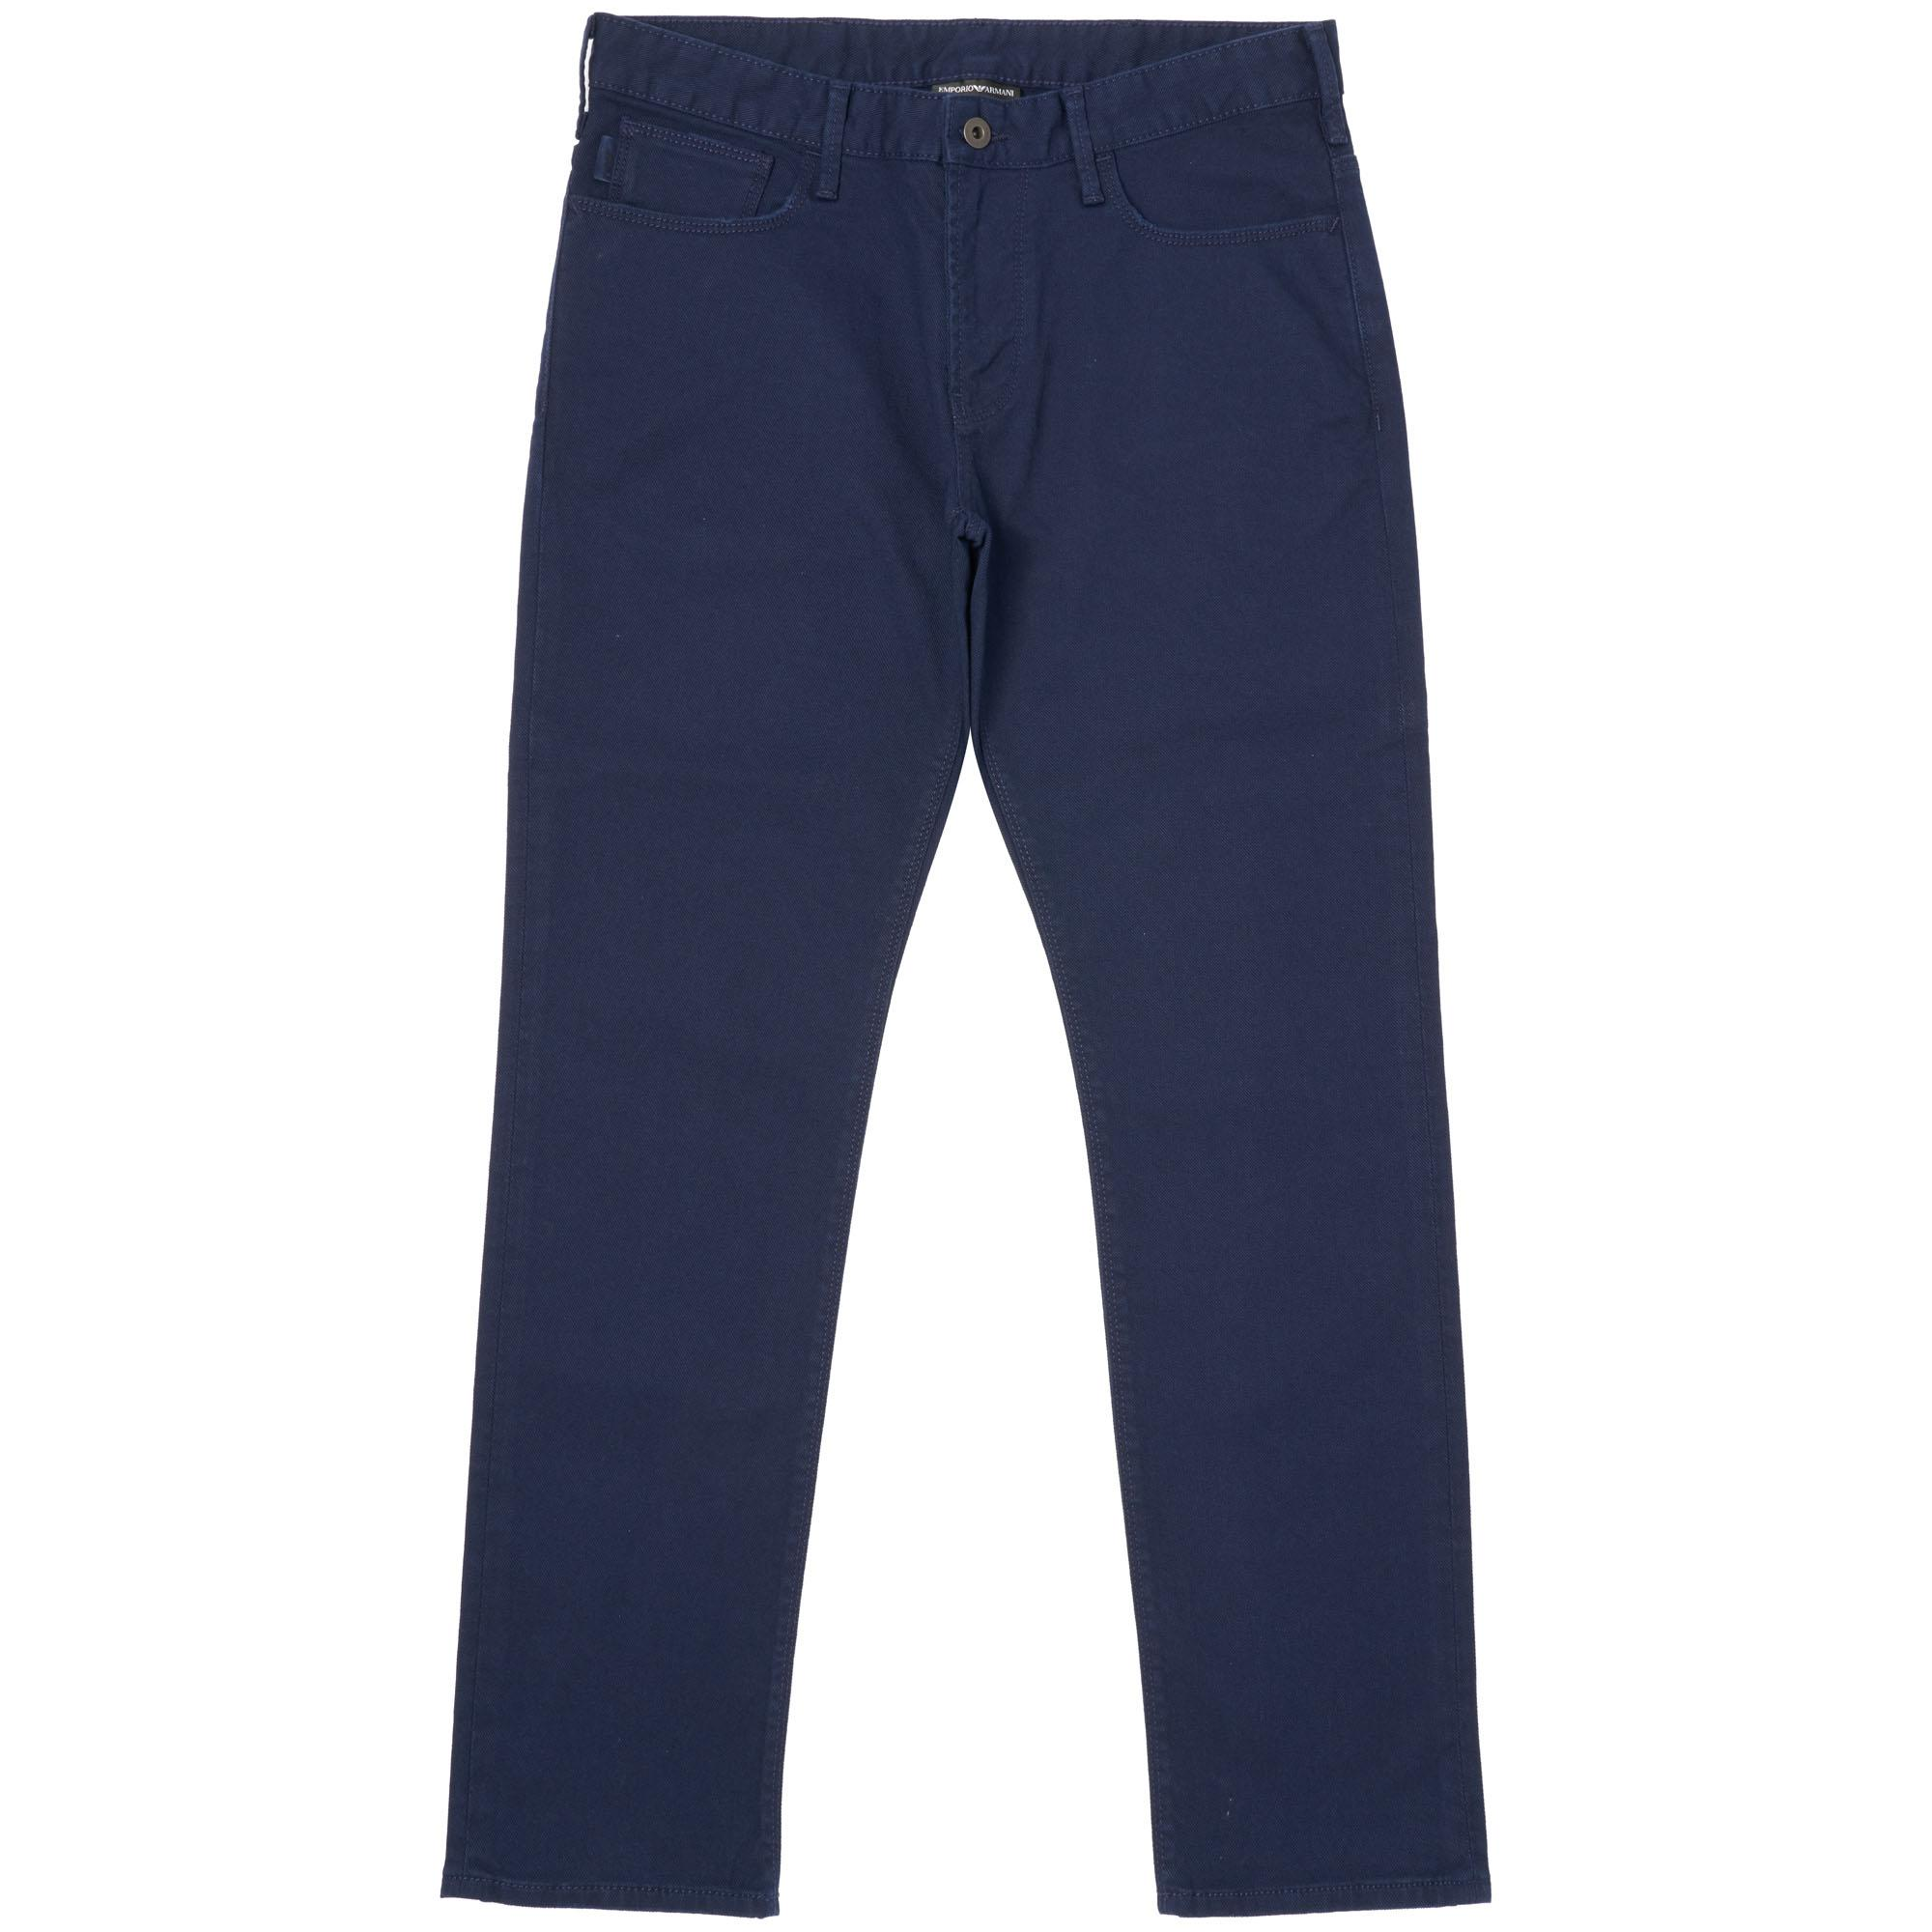 c6da5e3d8539 Emporio Armani - Blue J06 Slim Fit Stretch Cotton Jeans for Men - Lyst.  View fullscreen